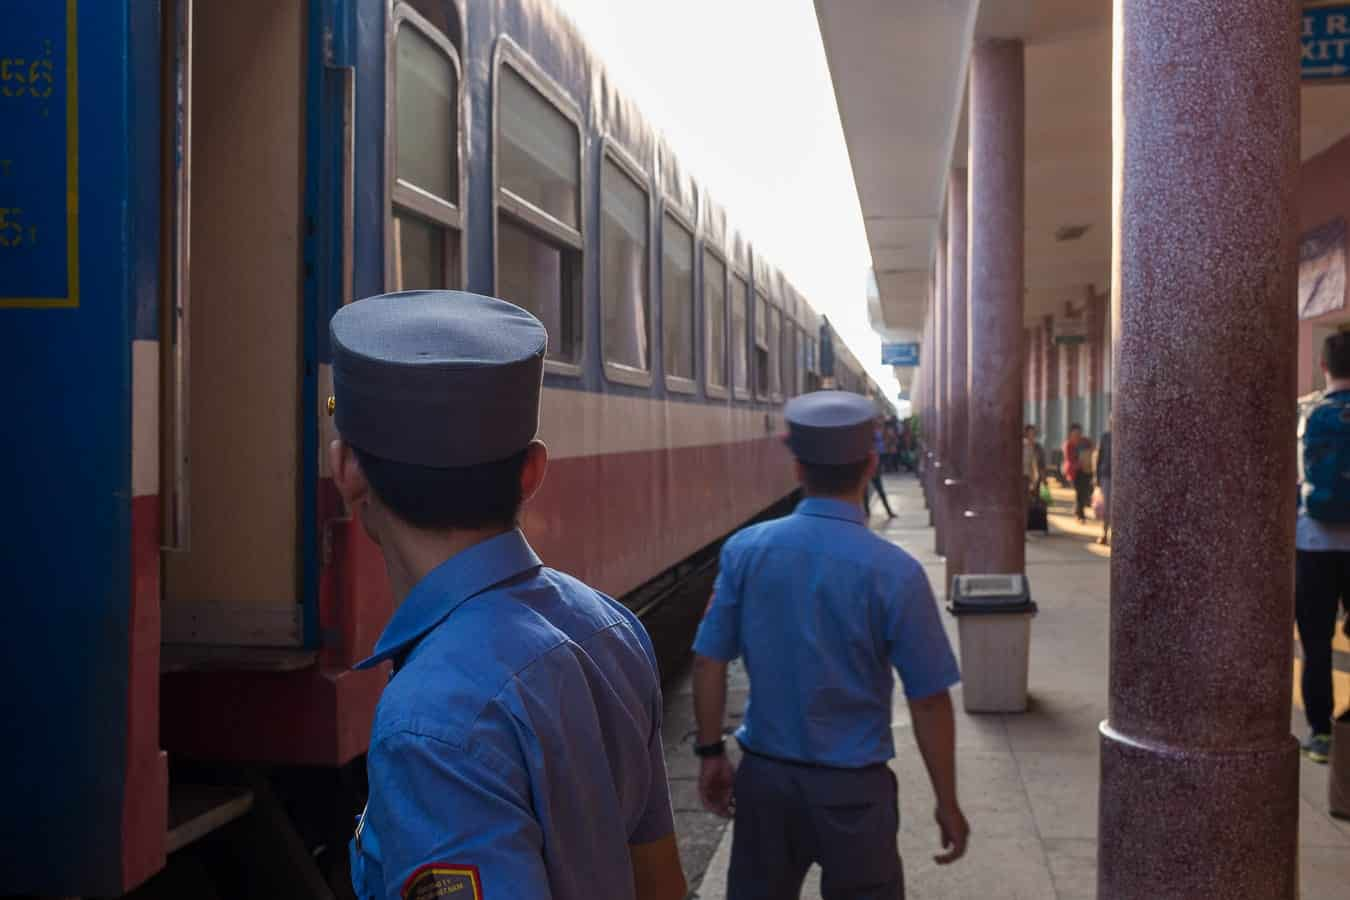 Train guards - Hoi An to Hue